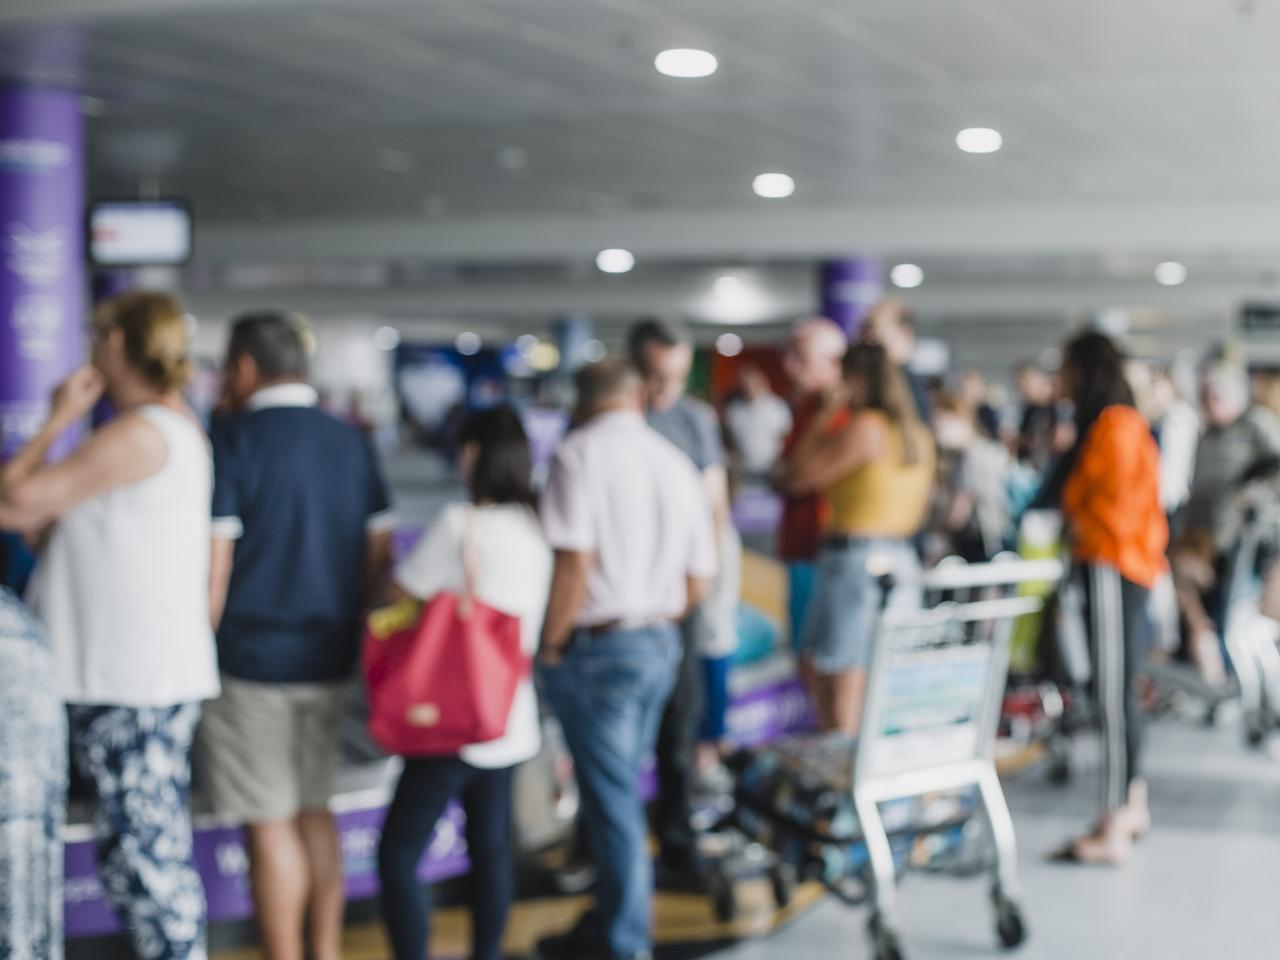 Defocused shot of people waiting to collect their luggage in an airport.